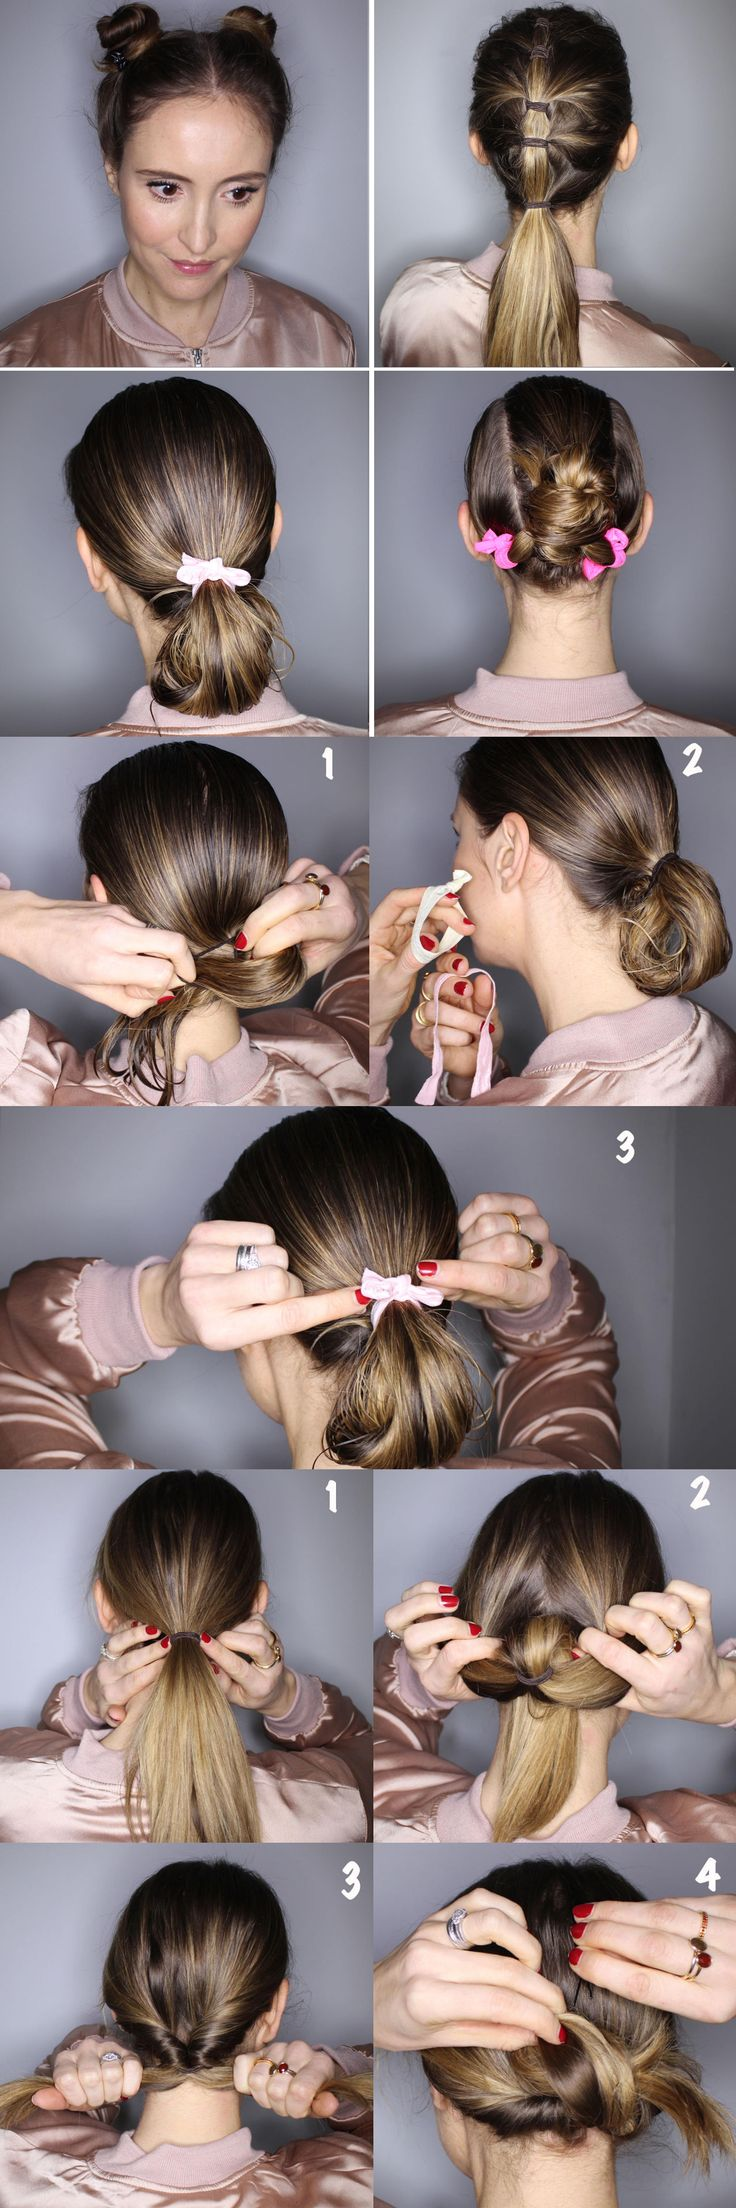 Gym hair ideas - to keep your hair off your face and look pretty in the process